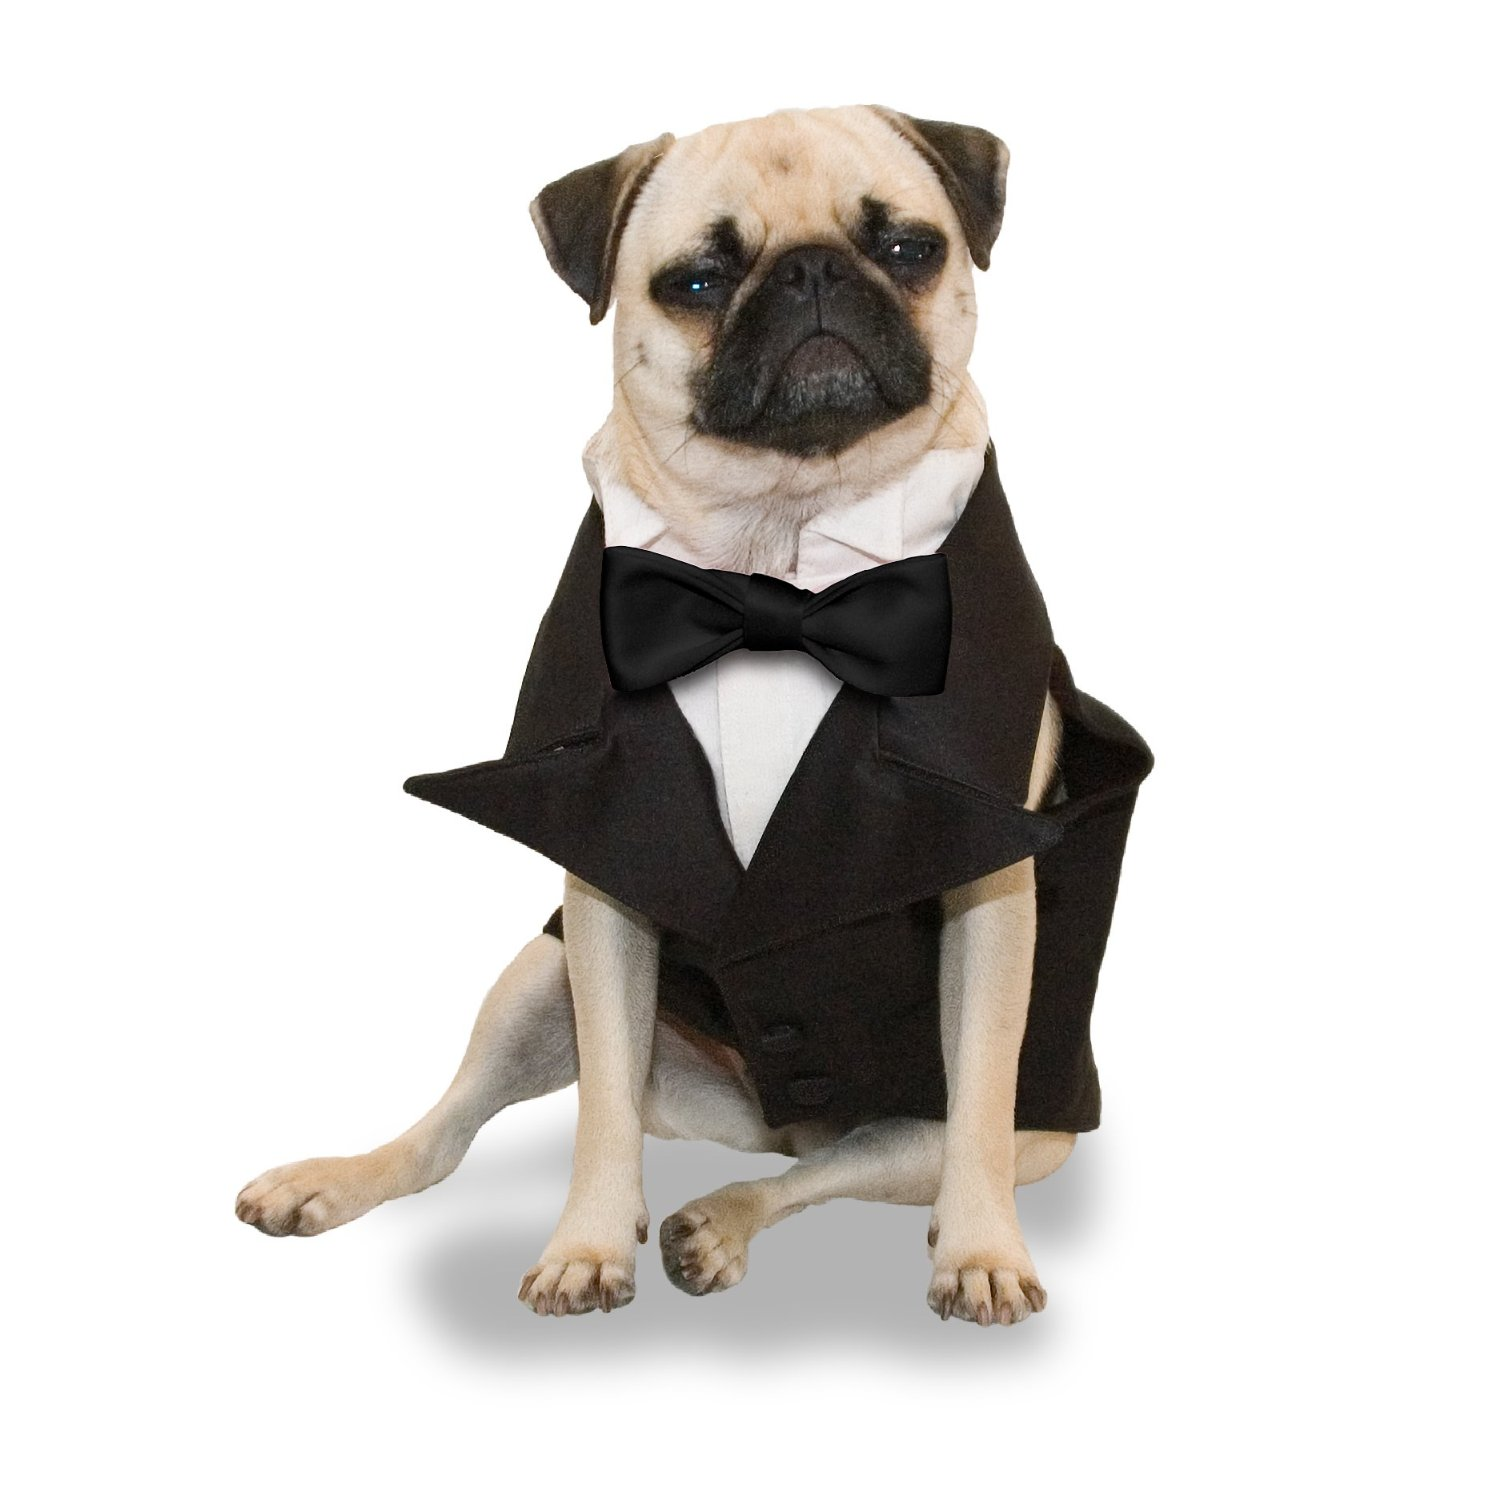 Dogs In Tuxedos photo - 1